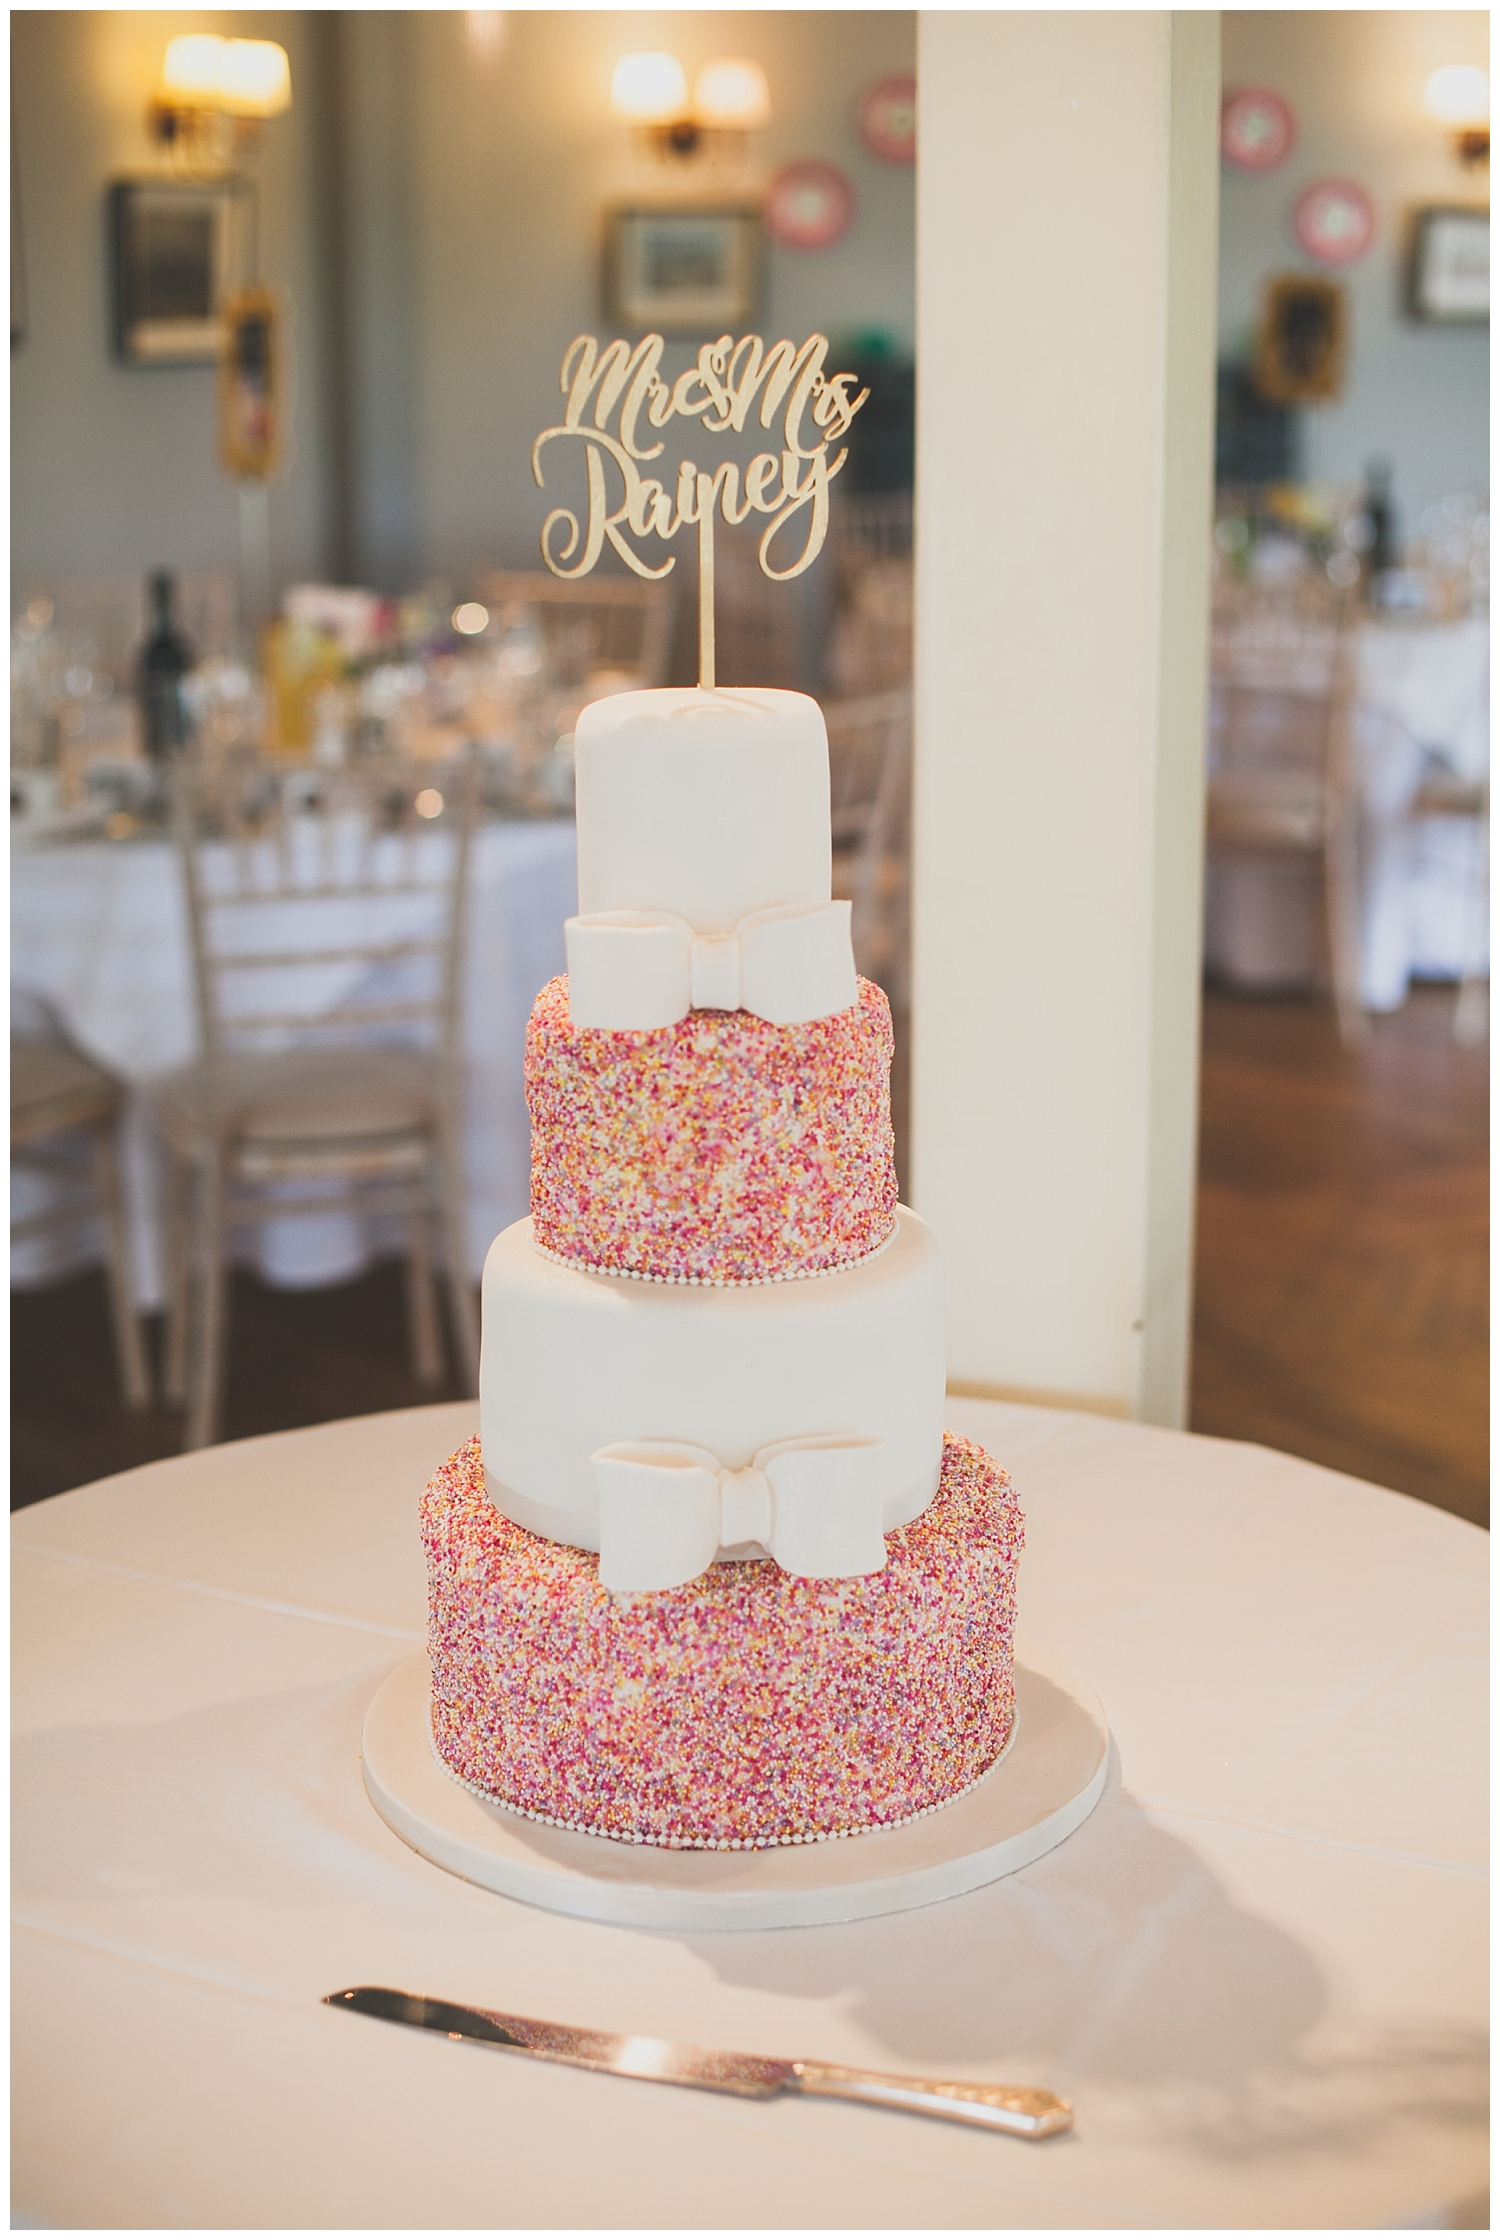 Brunch ice-cream style wedding cake covered in pink sprinkles